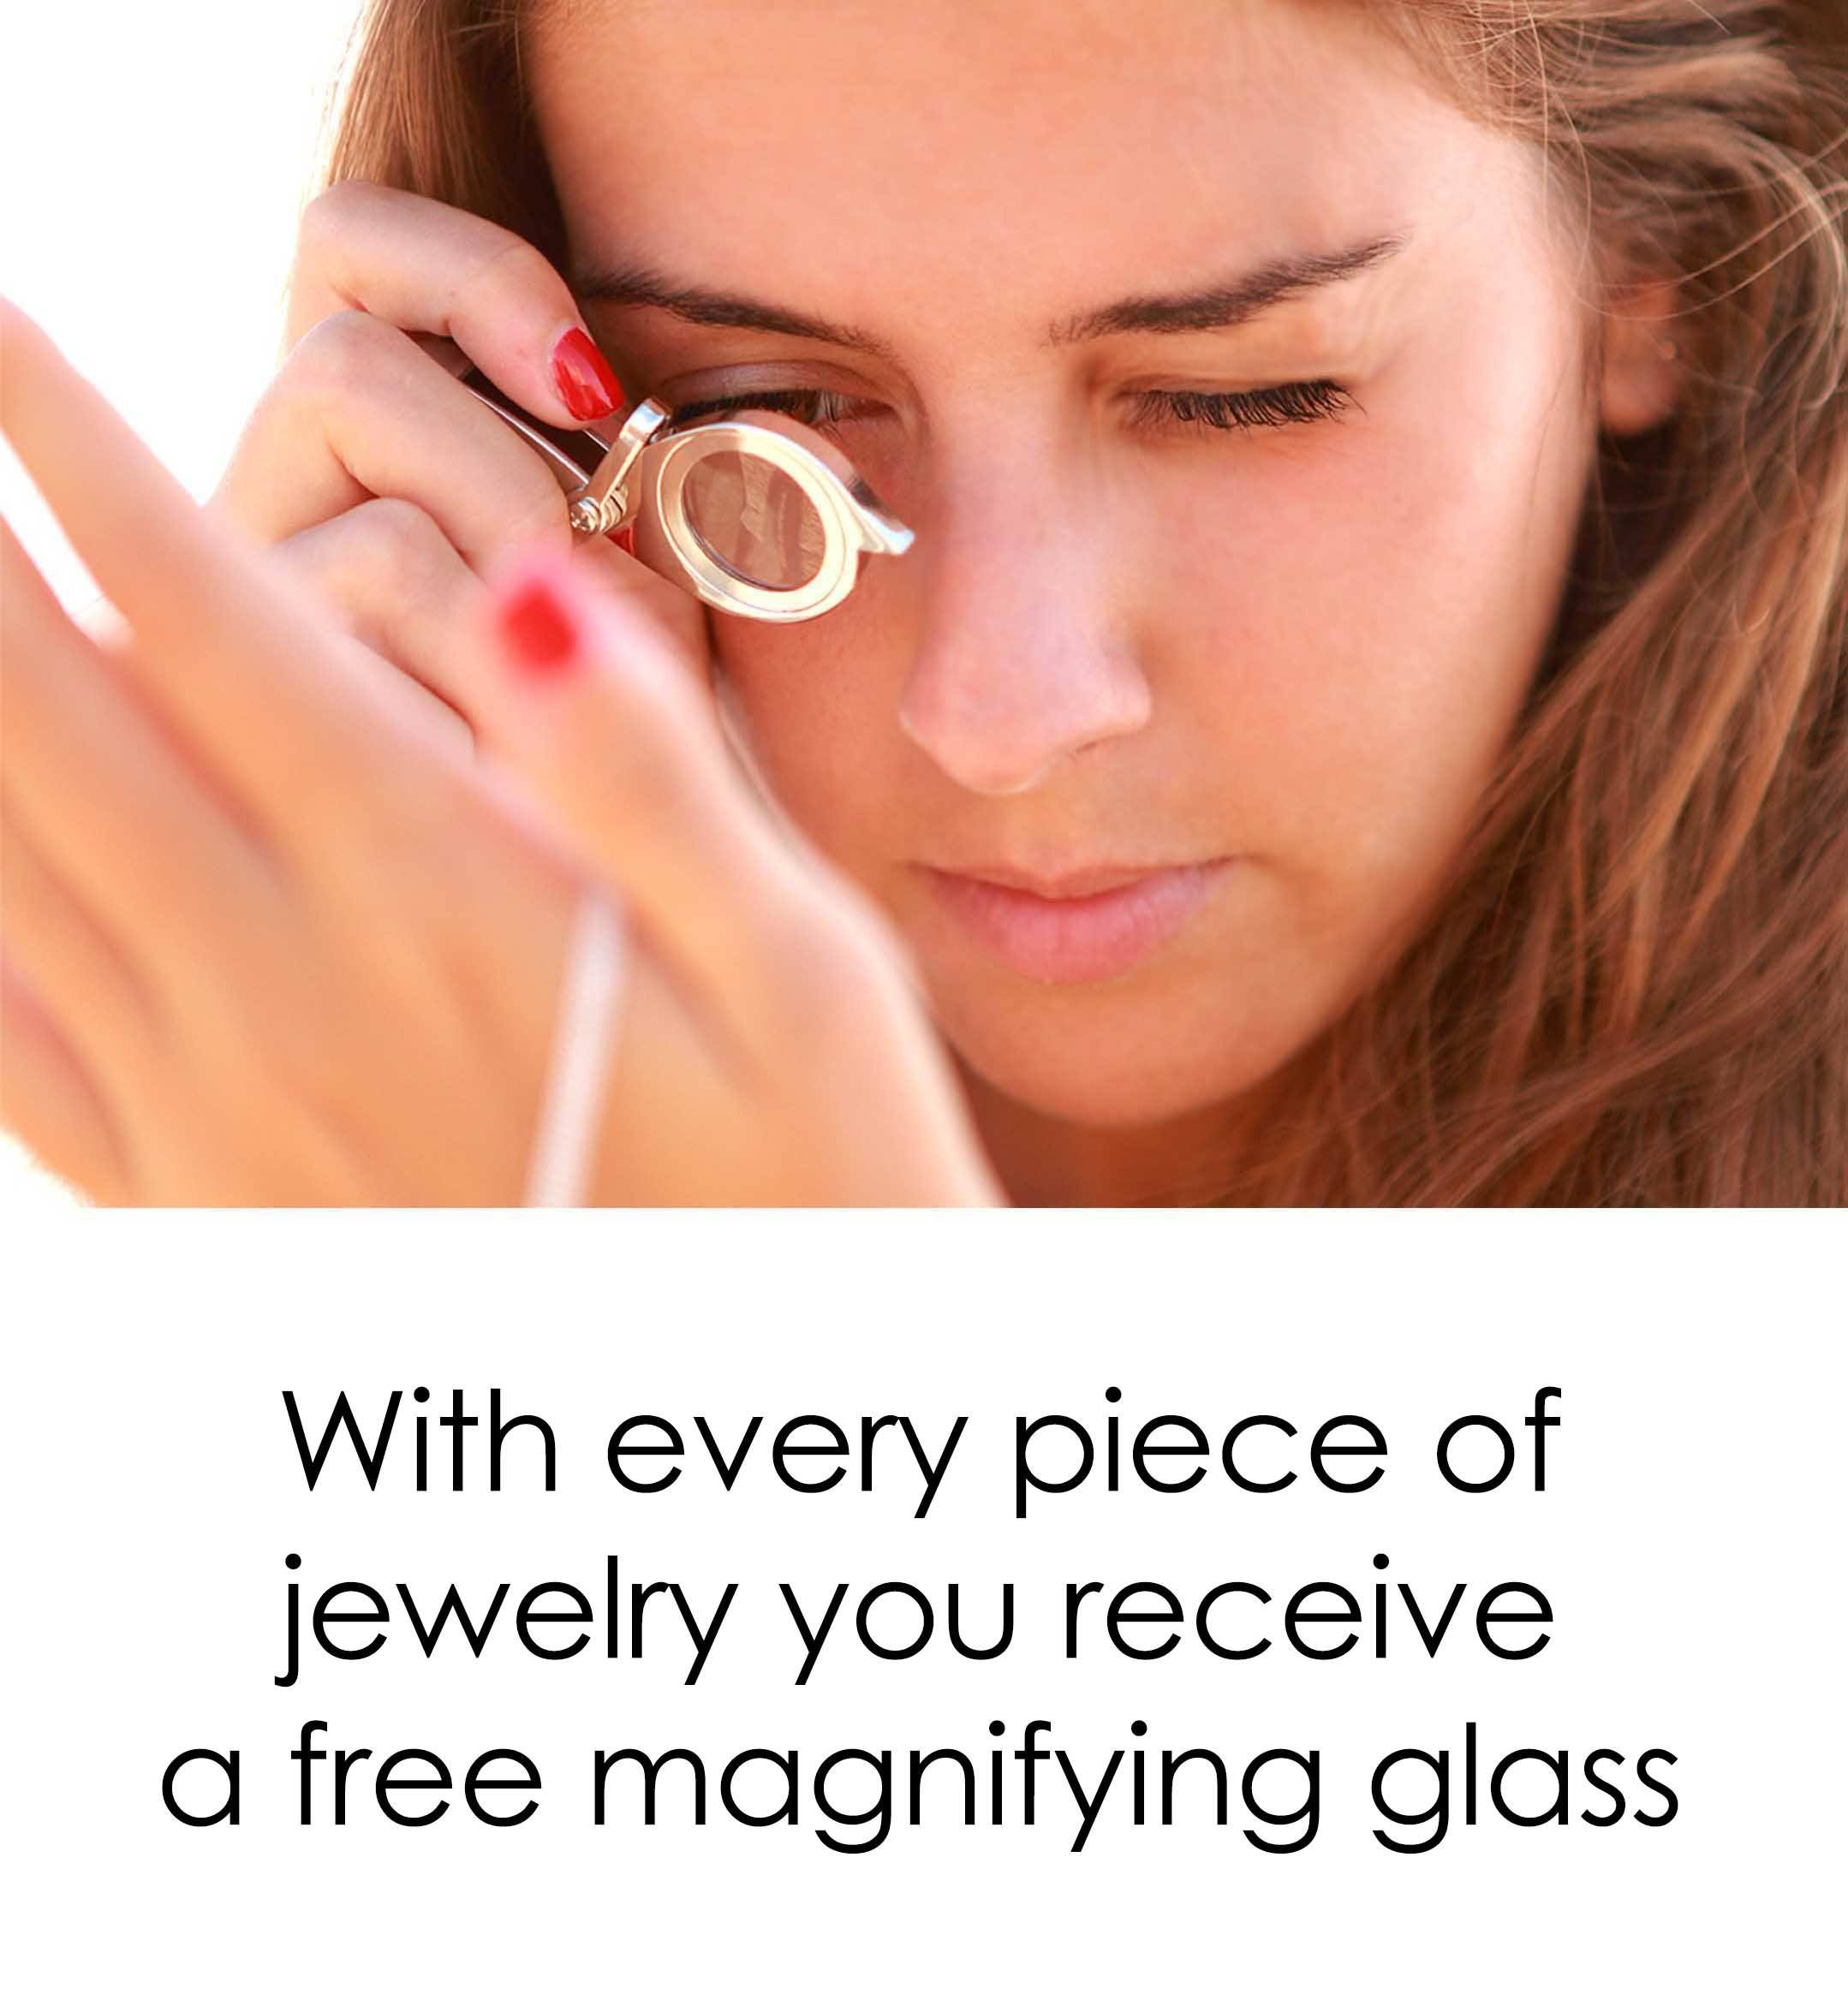 Nano Jewelry Magnifying Glass